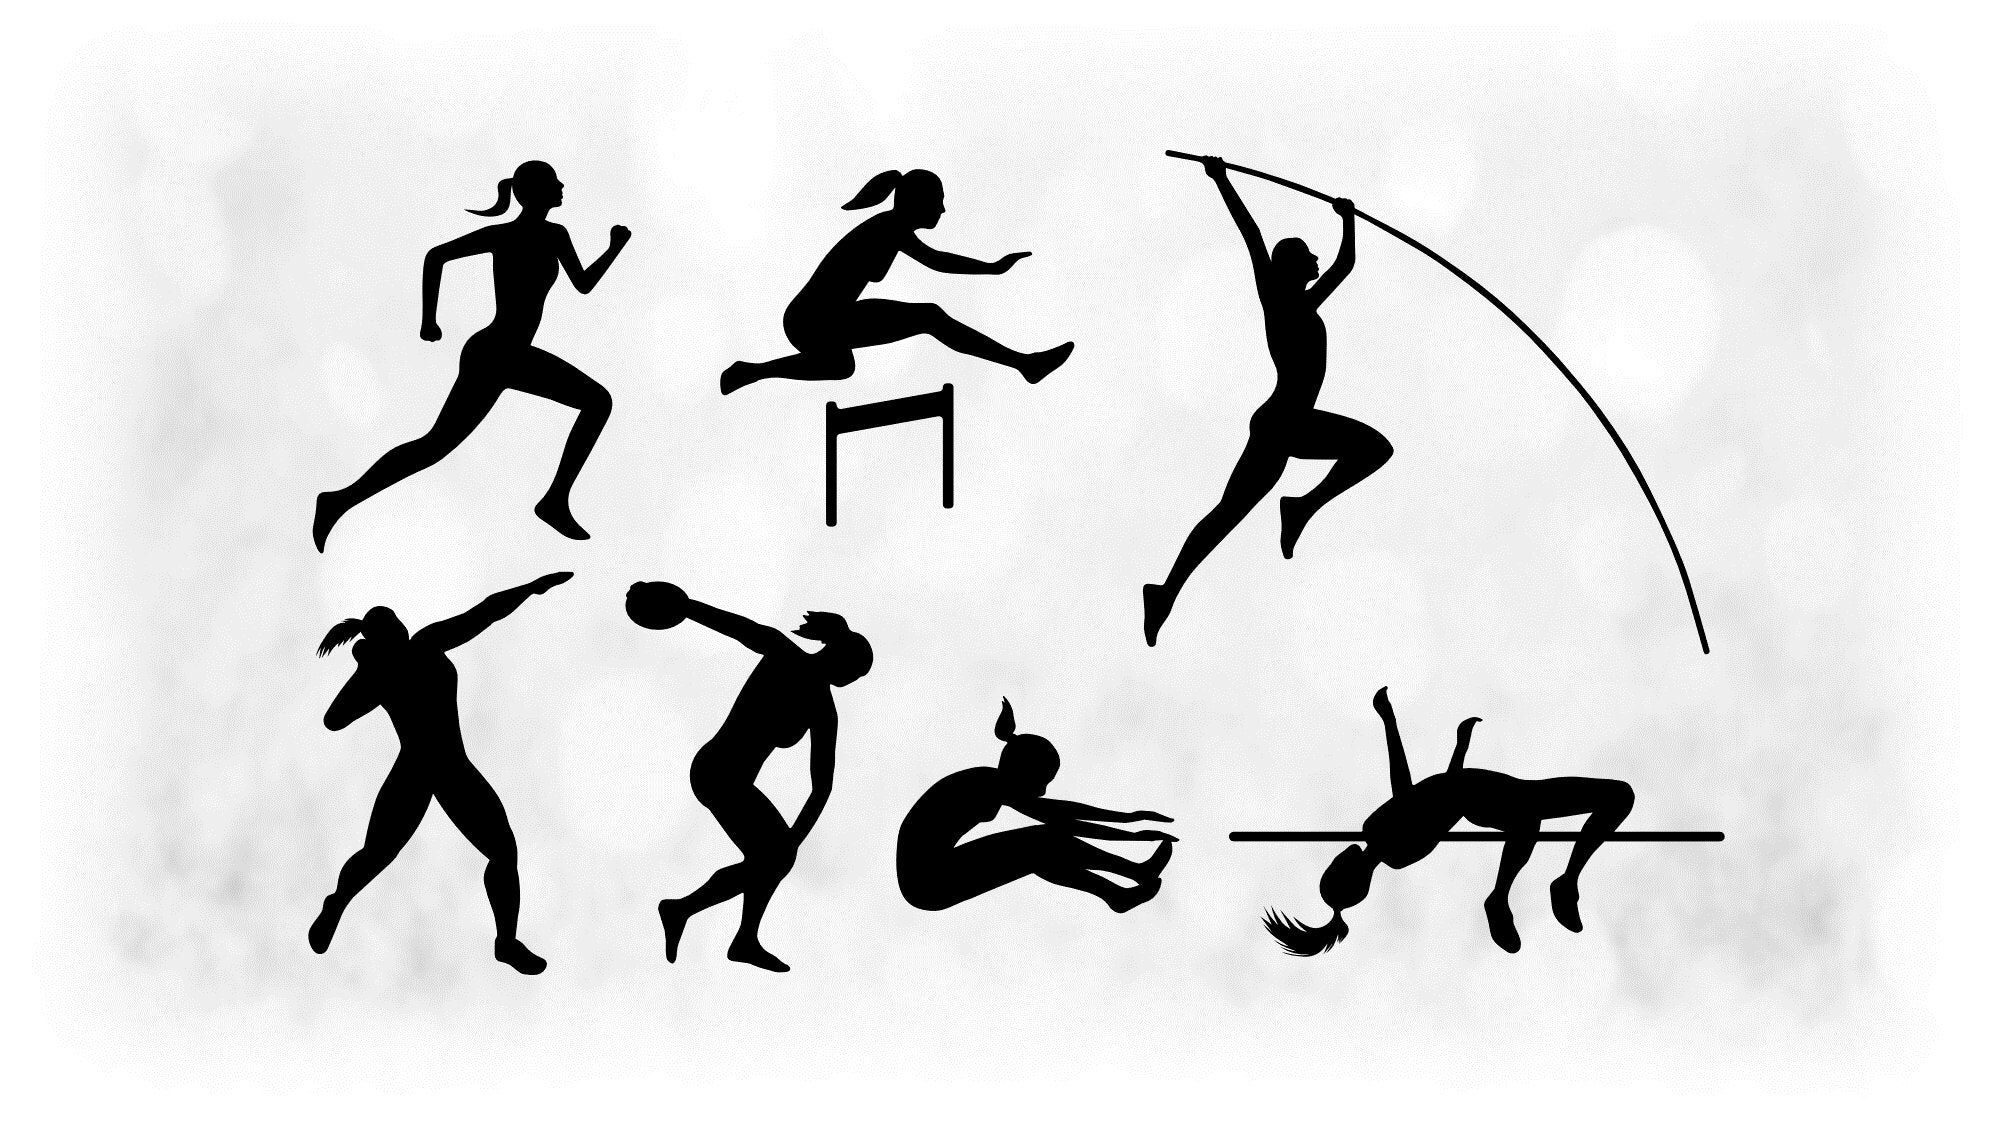 Sports Clipart Value Pack Black White Female Track Etsy In 2021 Clip Art Track And Field Black And White